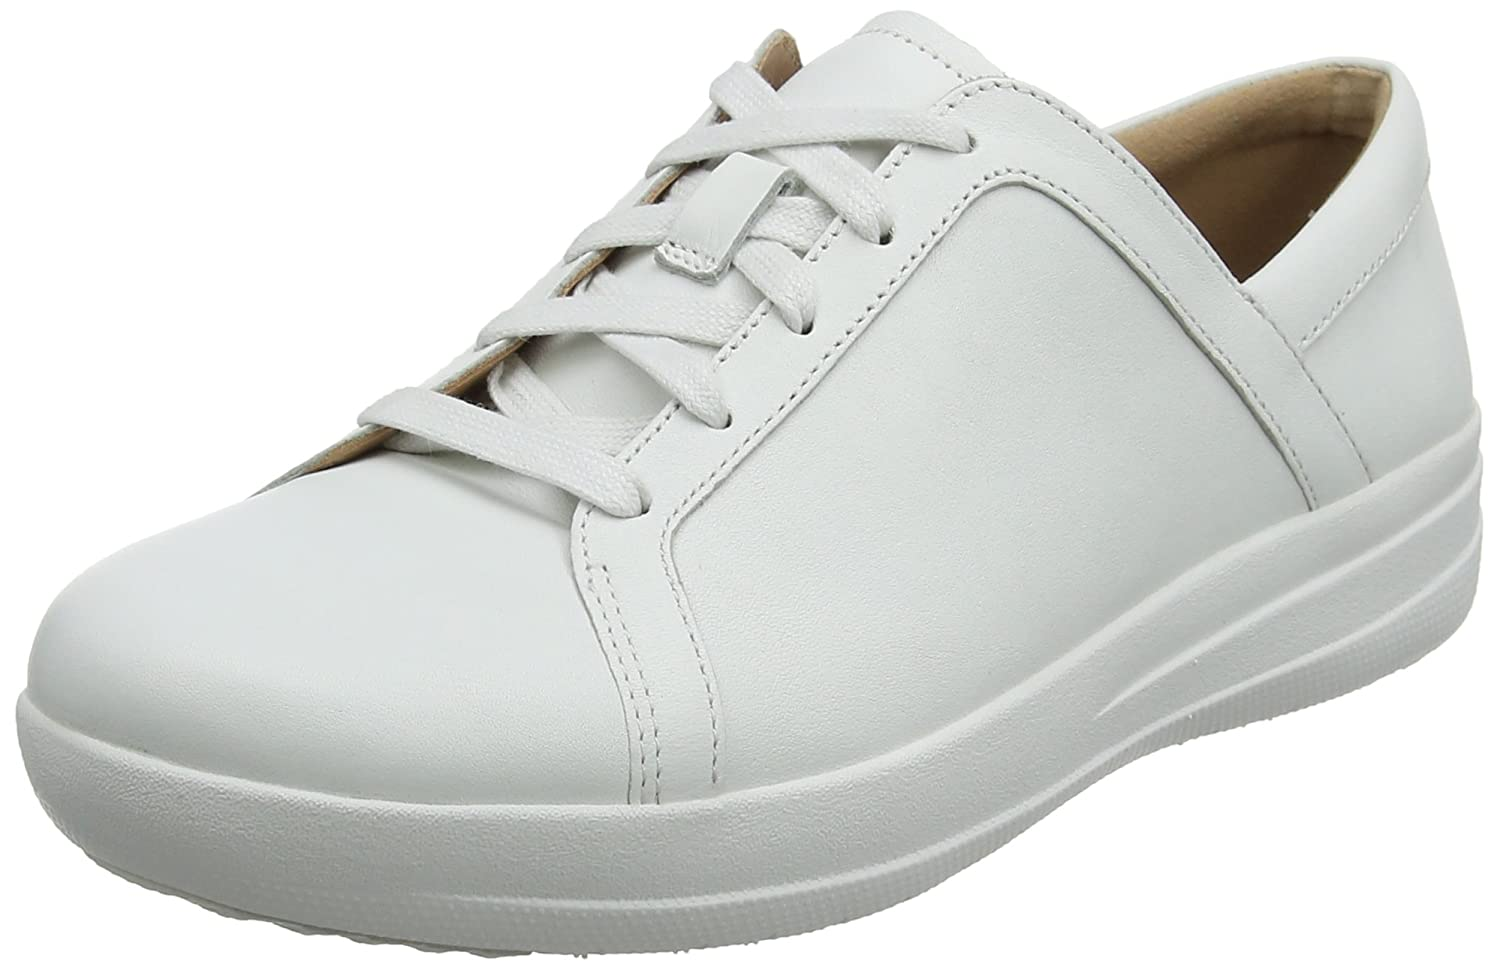 Fitflop F-Sporty II Lace Up Sneakers-Leather, Zapatillas para Mujer